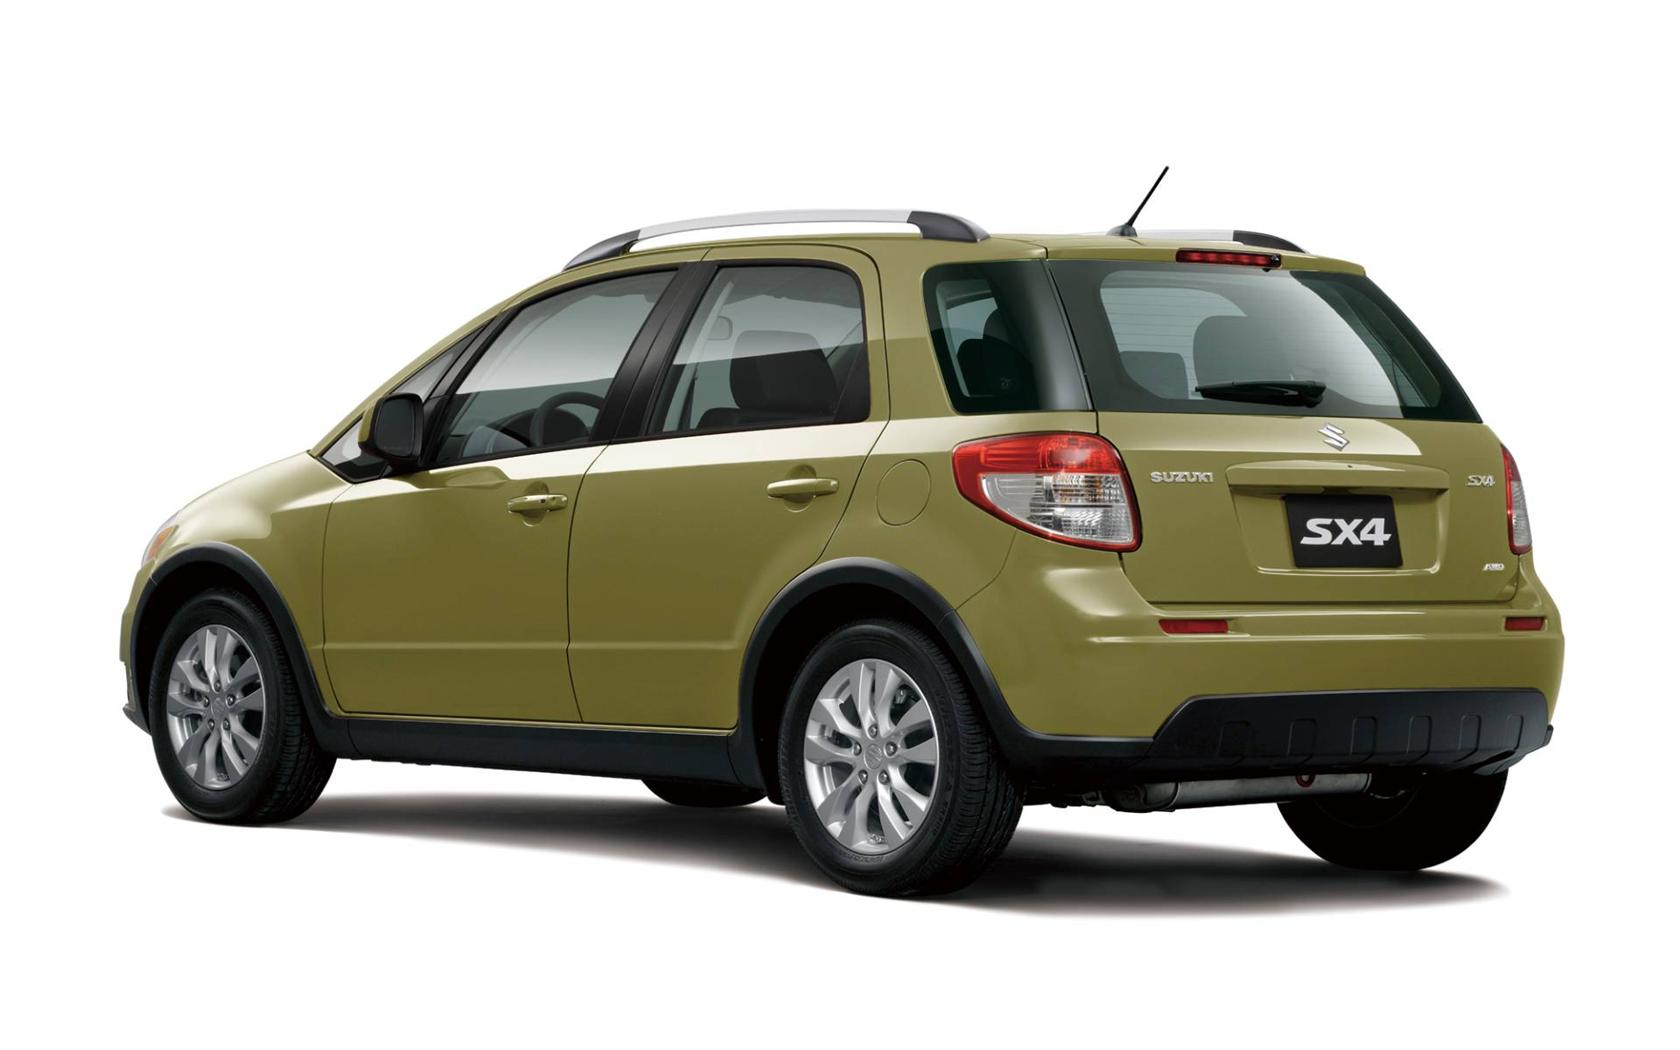 2013 suzuki sx4 crossover image. Black Bedroom Furniture Sets. Home Design Ideas